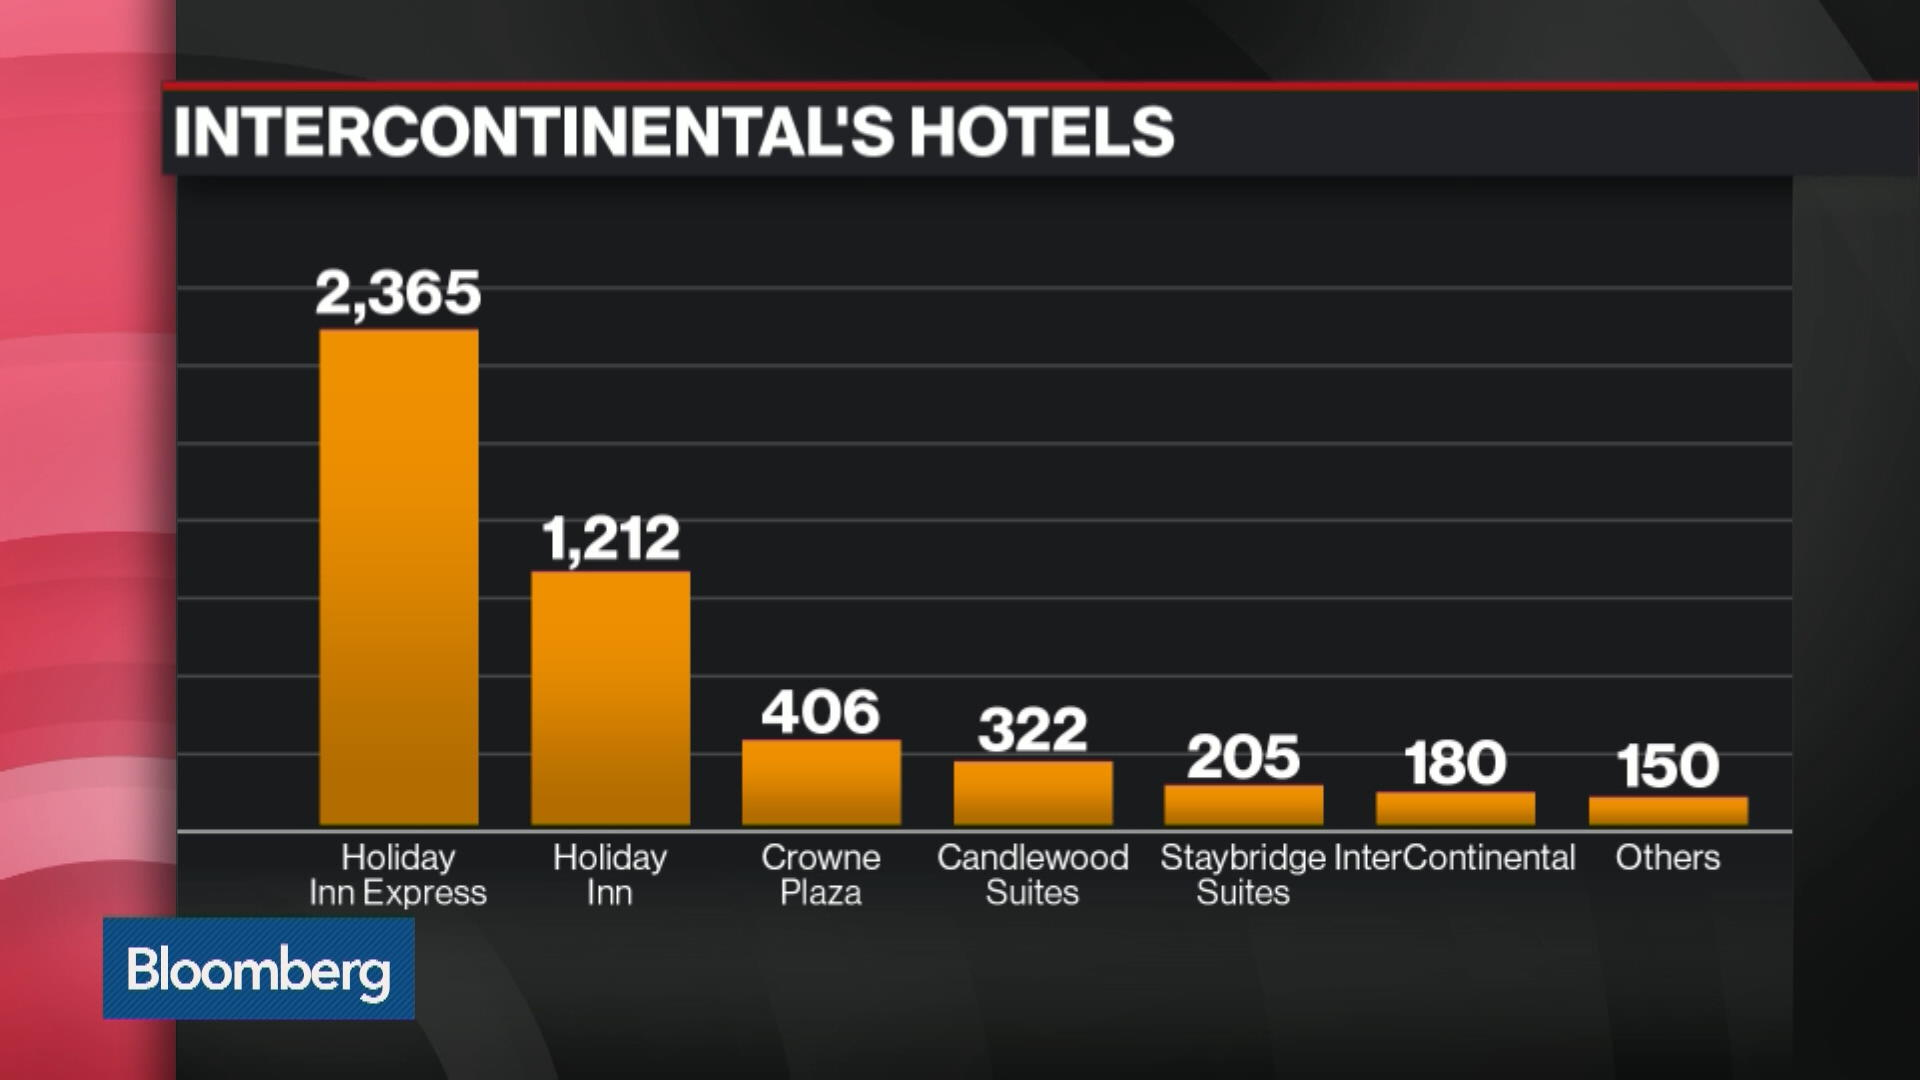 IHG:London Stock Quote - InterContinental Hotels Group PLC